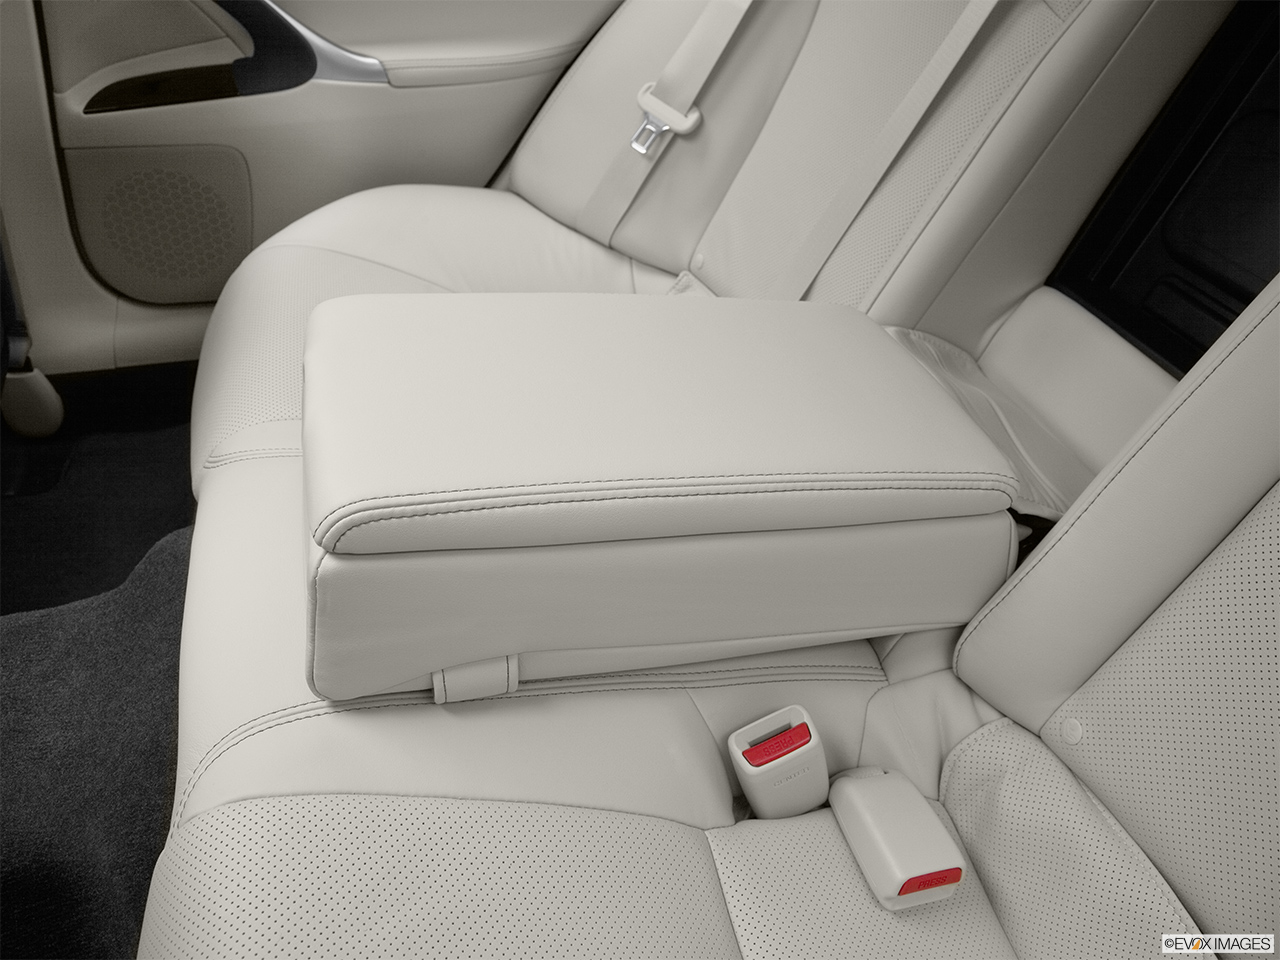 2012 Lexus IS 250 IS250 Rear center console with closed lid from driver's side looking down.